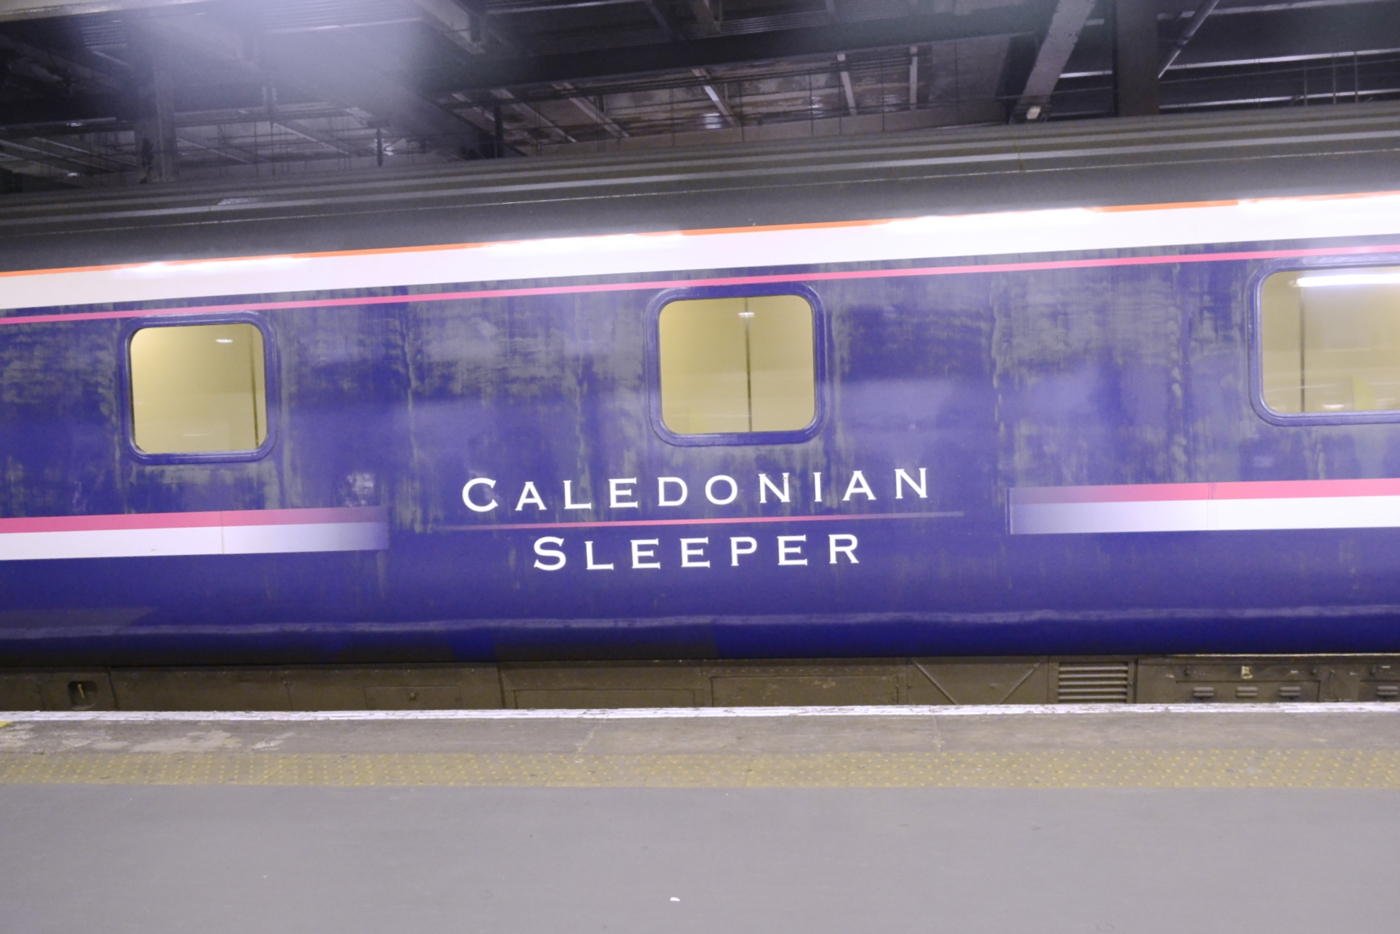 calsleeper_exterior ... & Caledonian Sleeper: Travelling From London To Edinburgh | GastroGays islam-shia.org